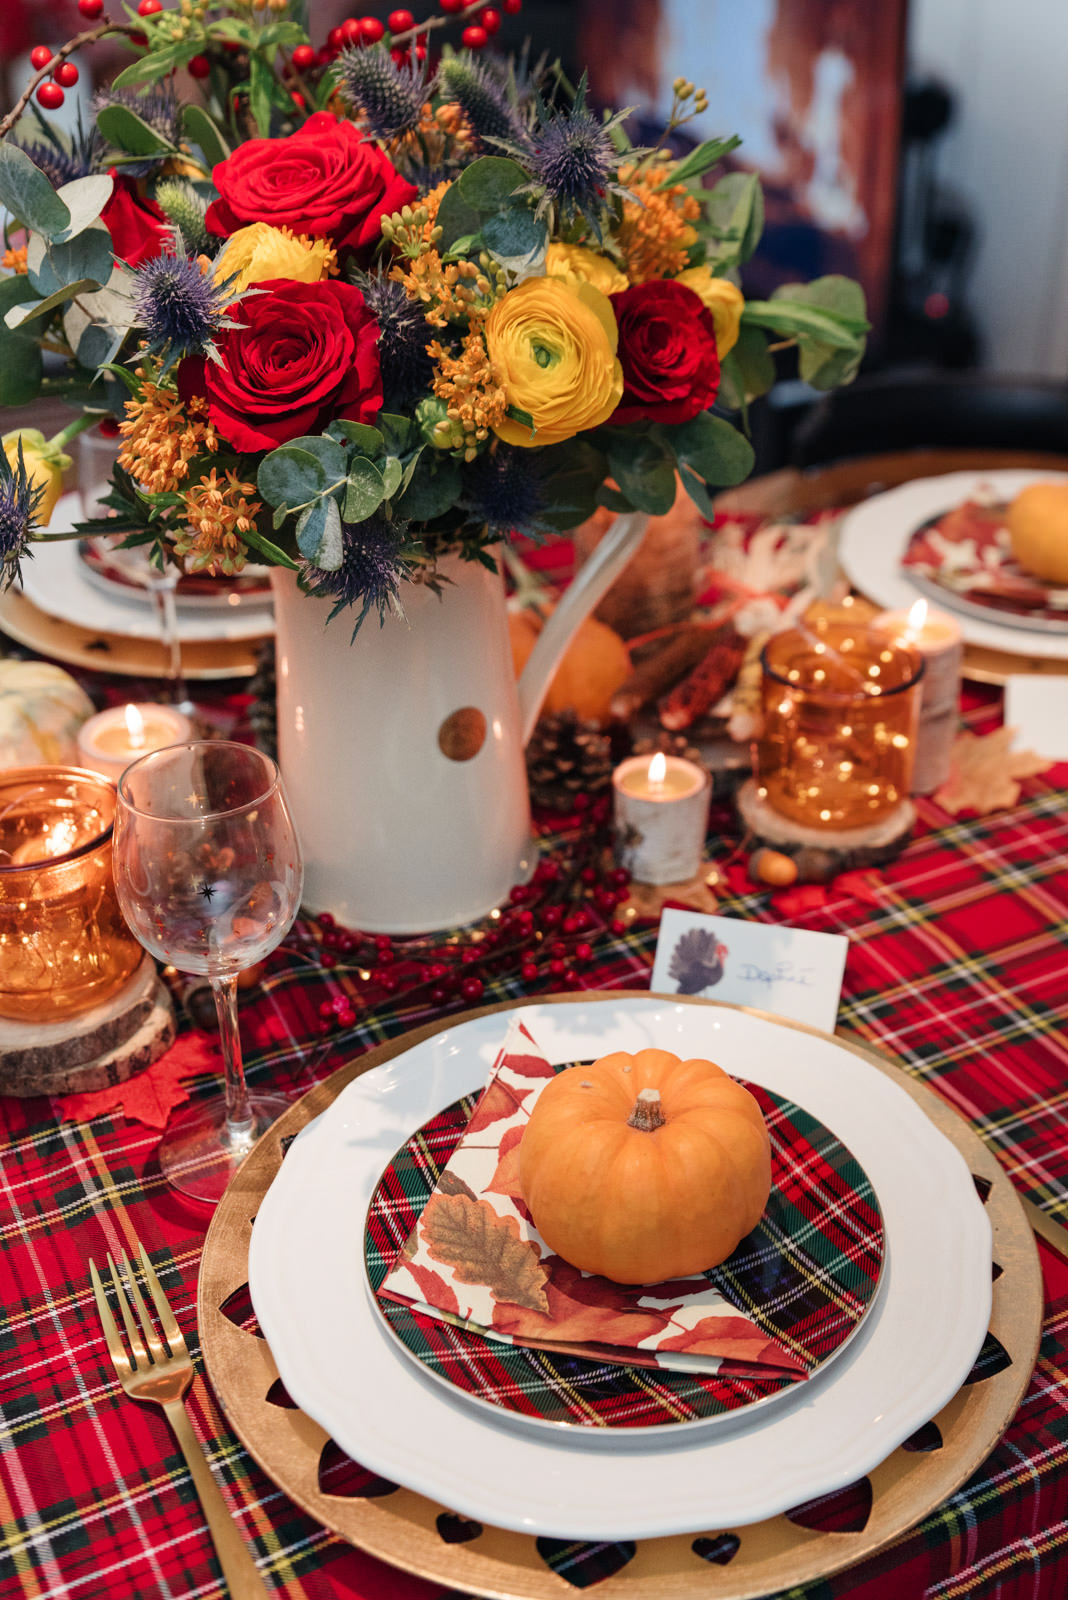 Blog-Mode-And-The-City-Lifestyle-Thanksgiving-2017-8